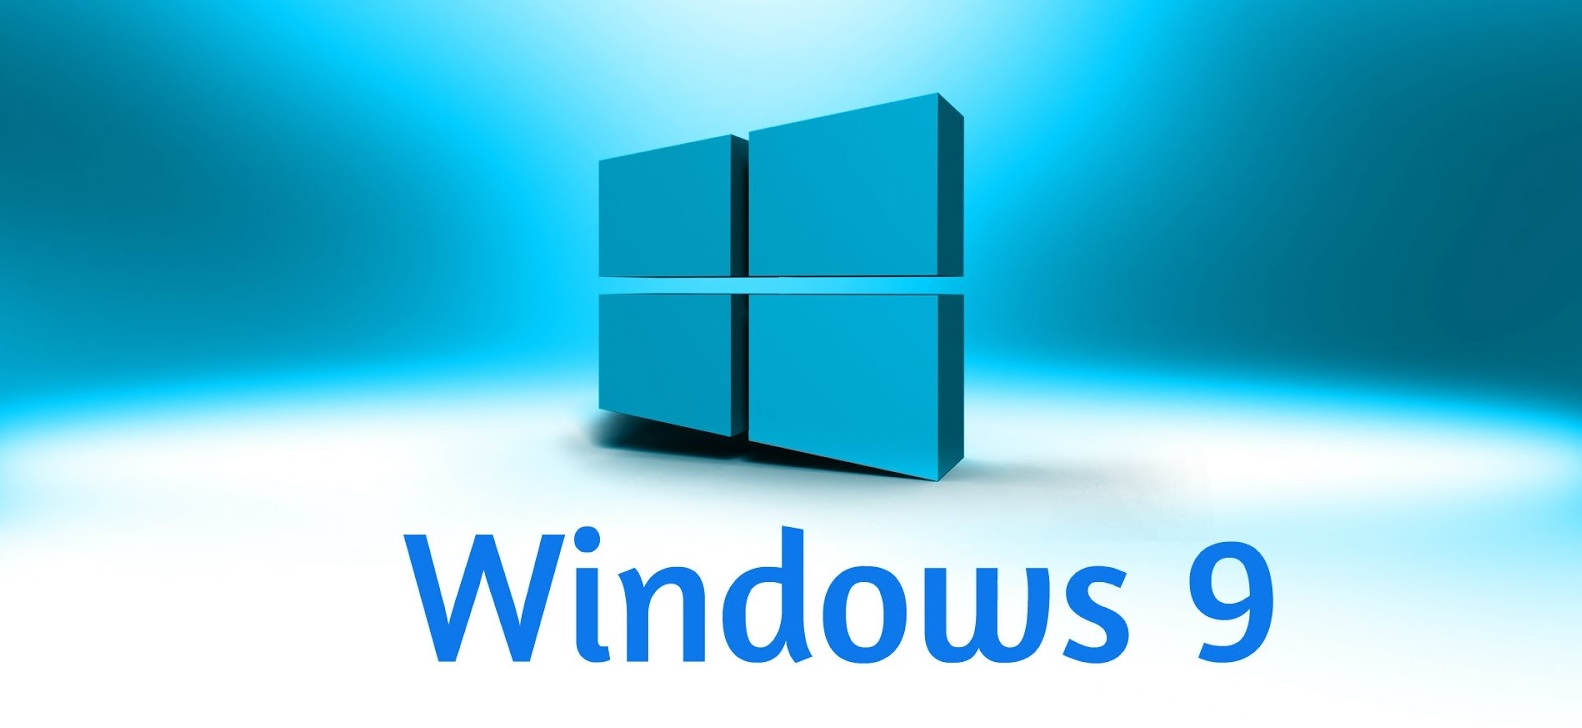 Windows 9 new